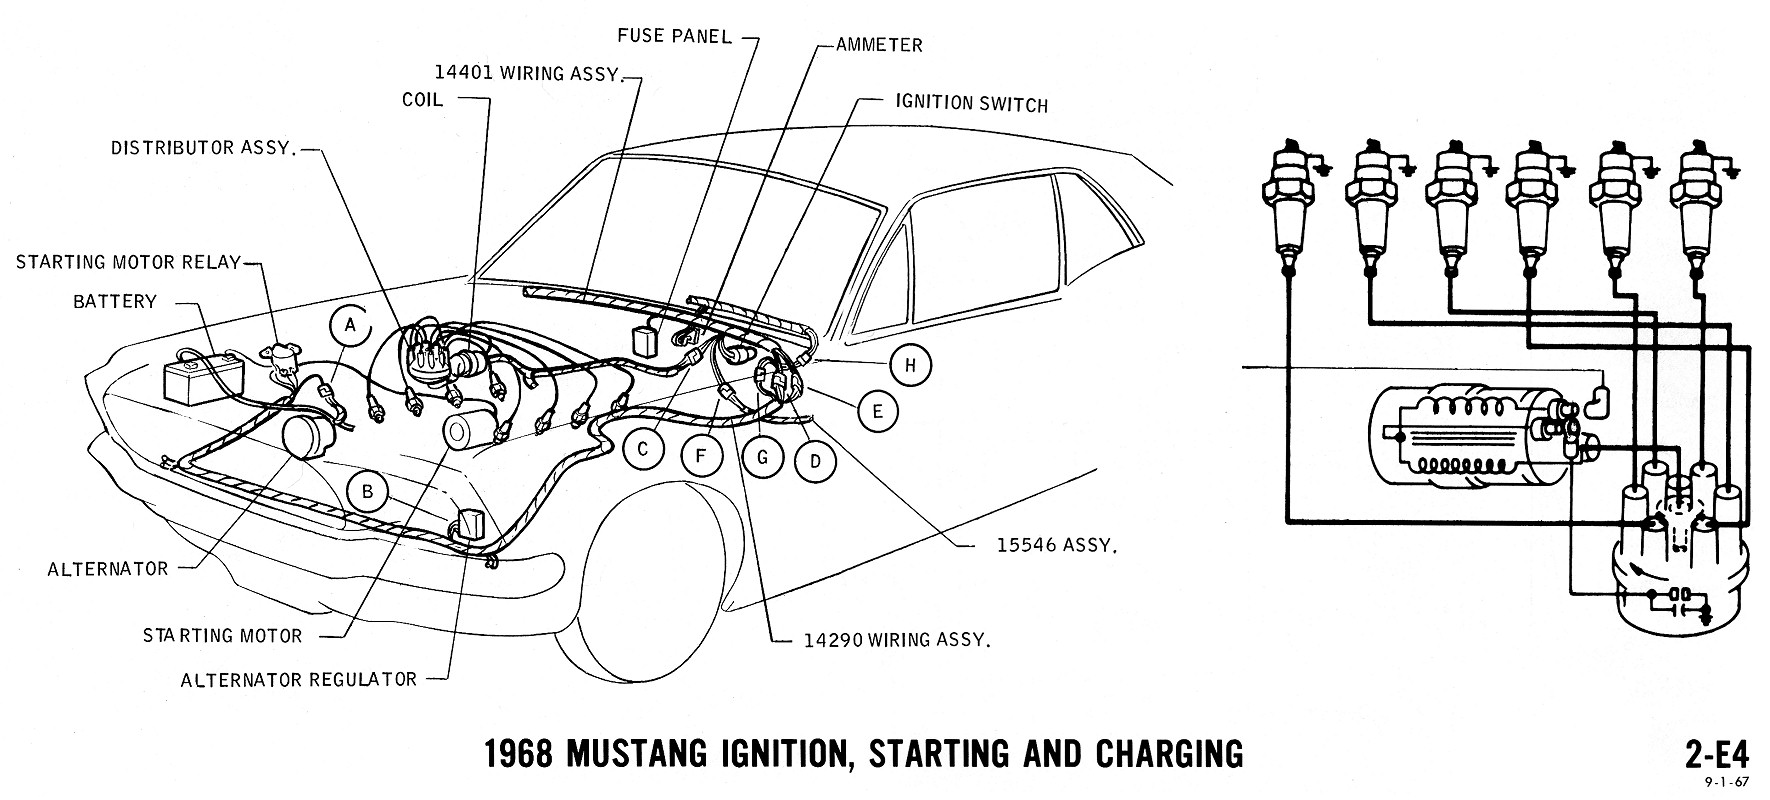 1968 Mustang Wiring Diagram Vacuum Schematics on 68 mustang dash wiring